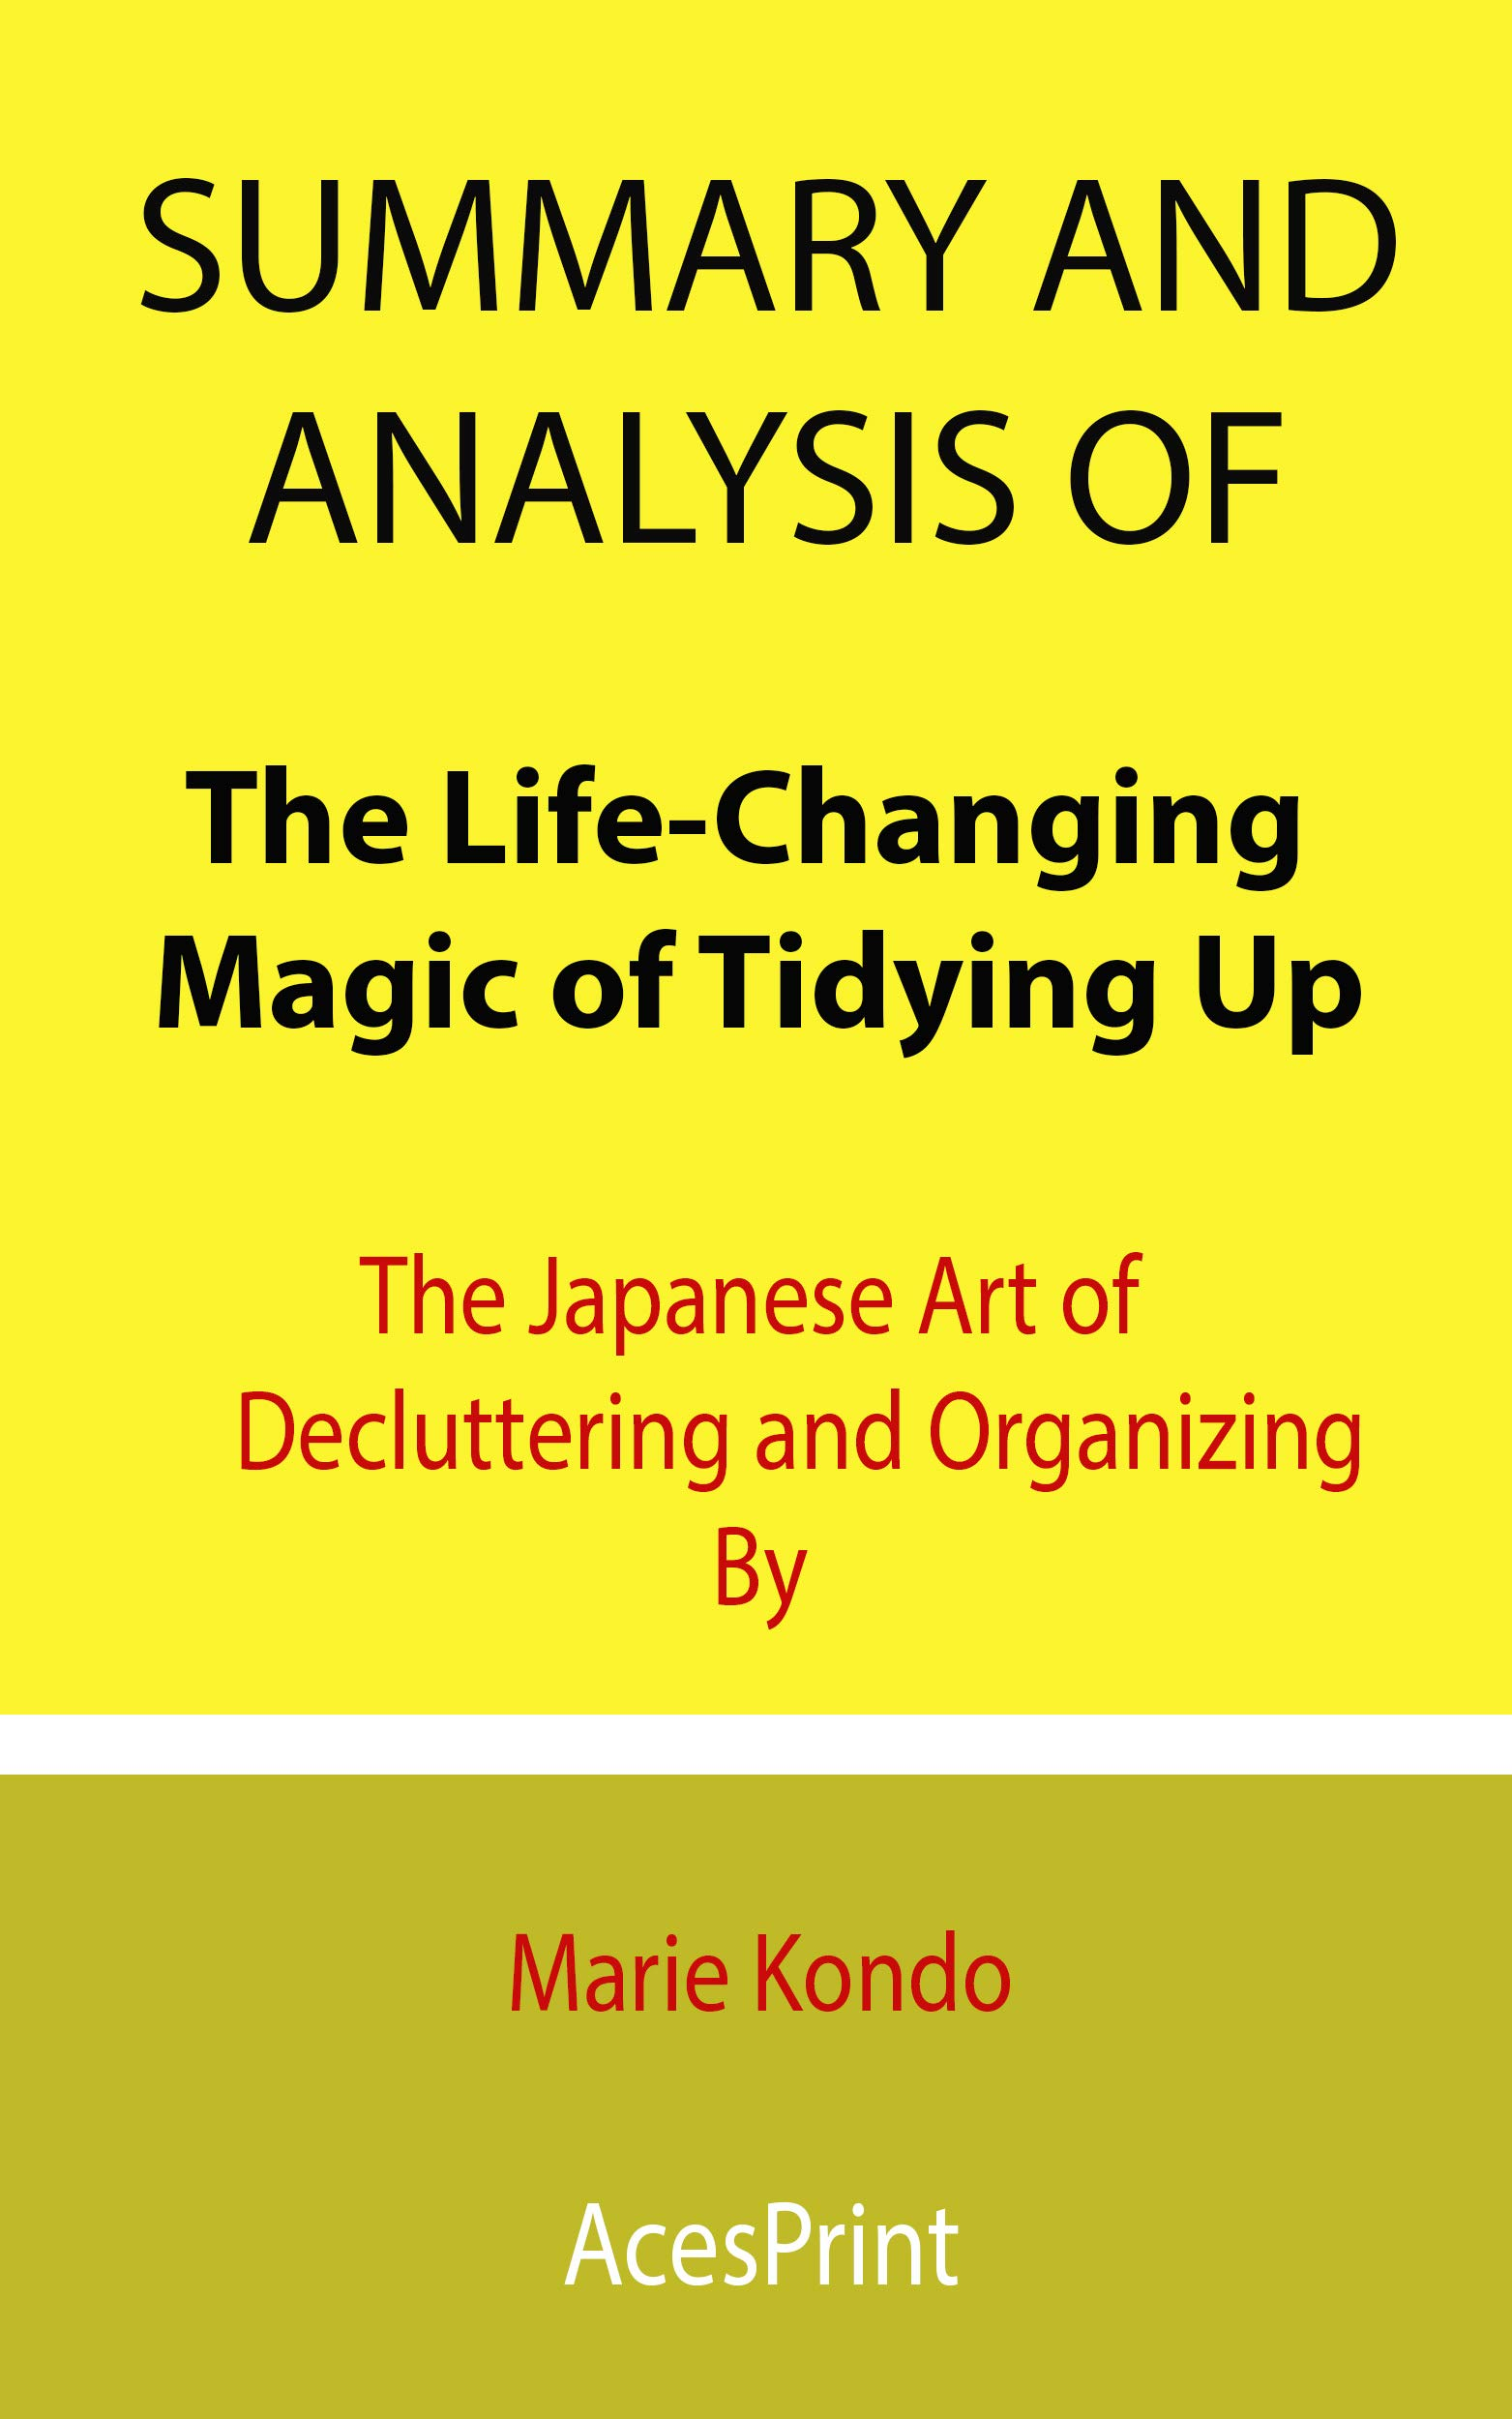 Summary and Analysis of The Life-Changing Magic of Tidying Up: The Japanese Art of Decluttering and Organizing By Marie Kondo